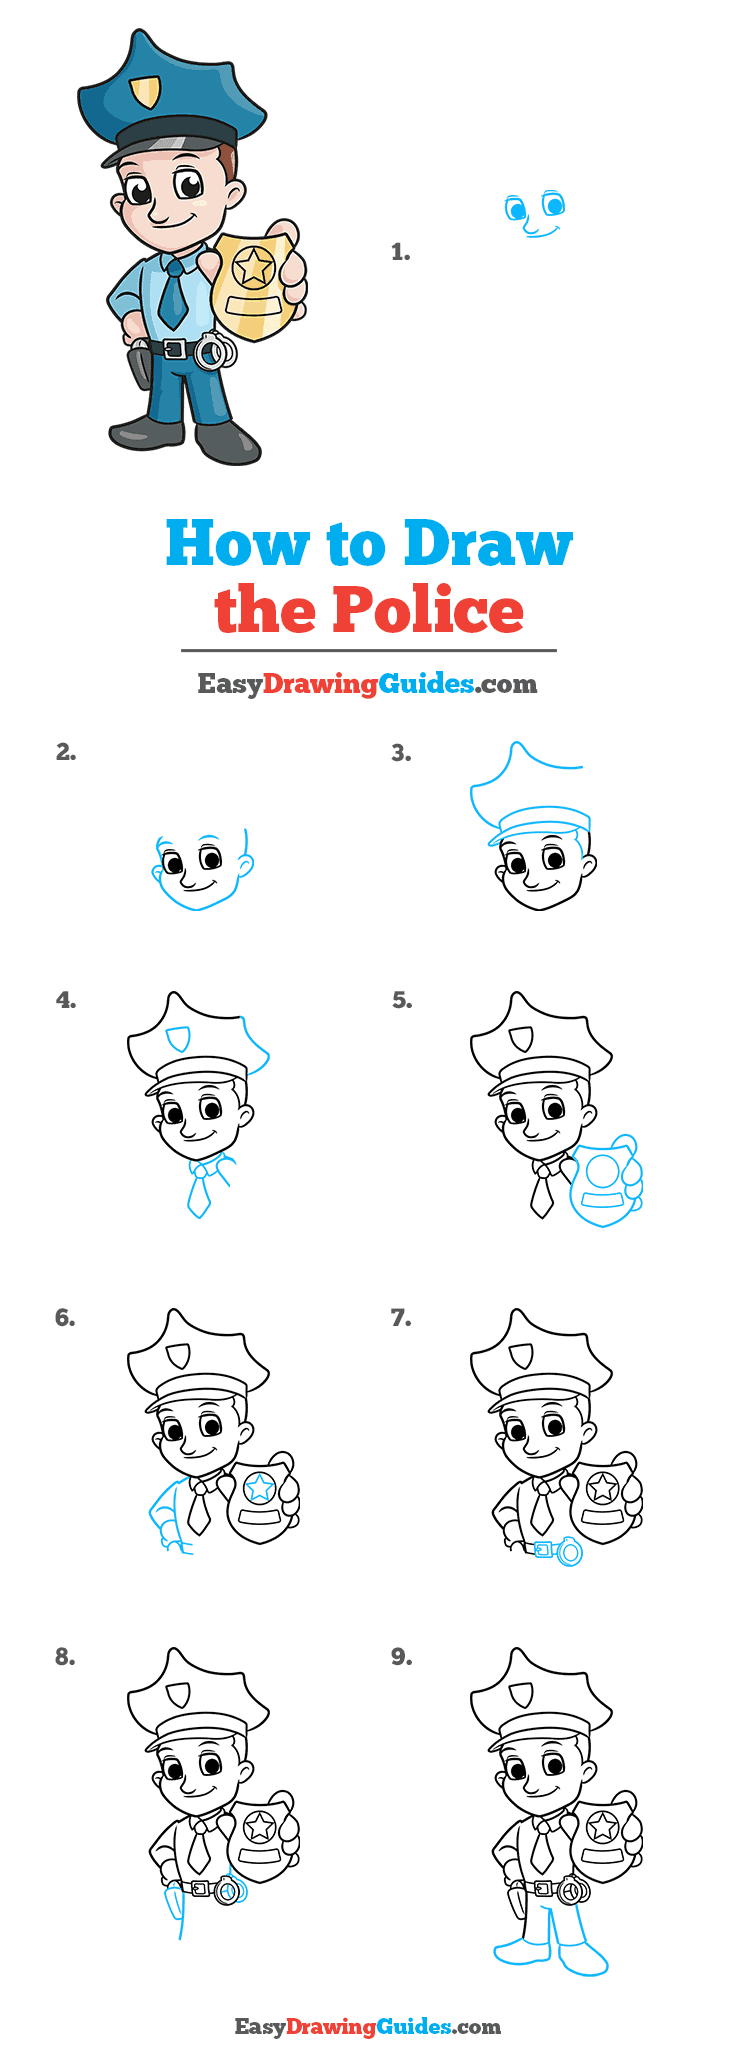 How to Draw Police